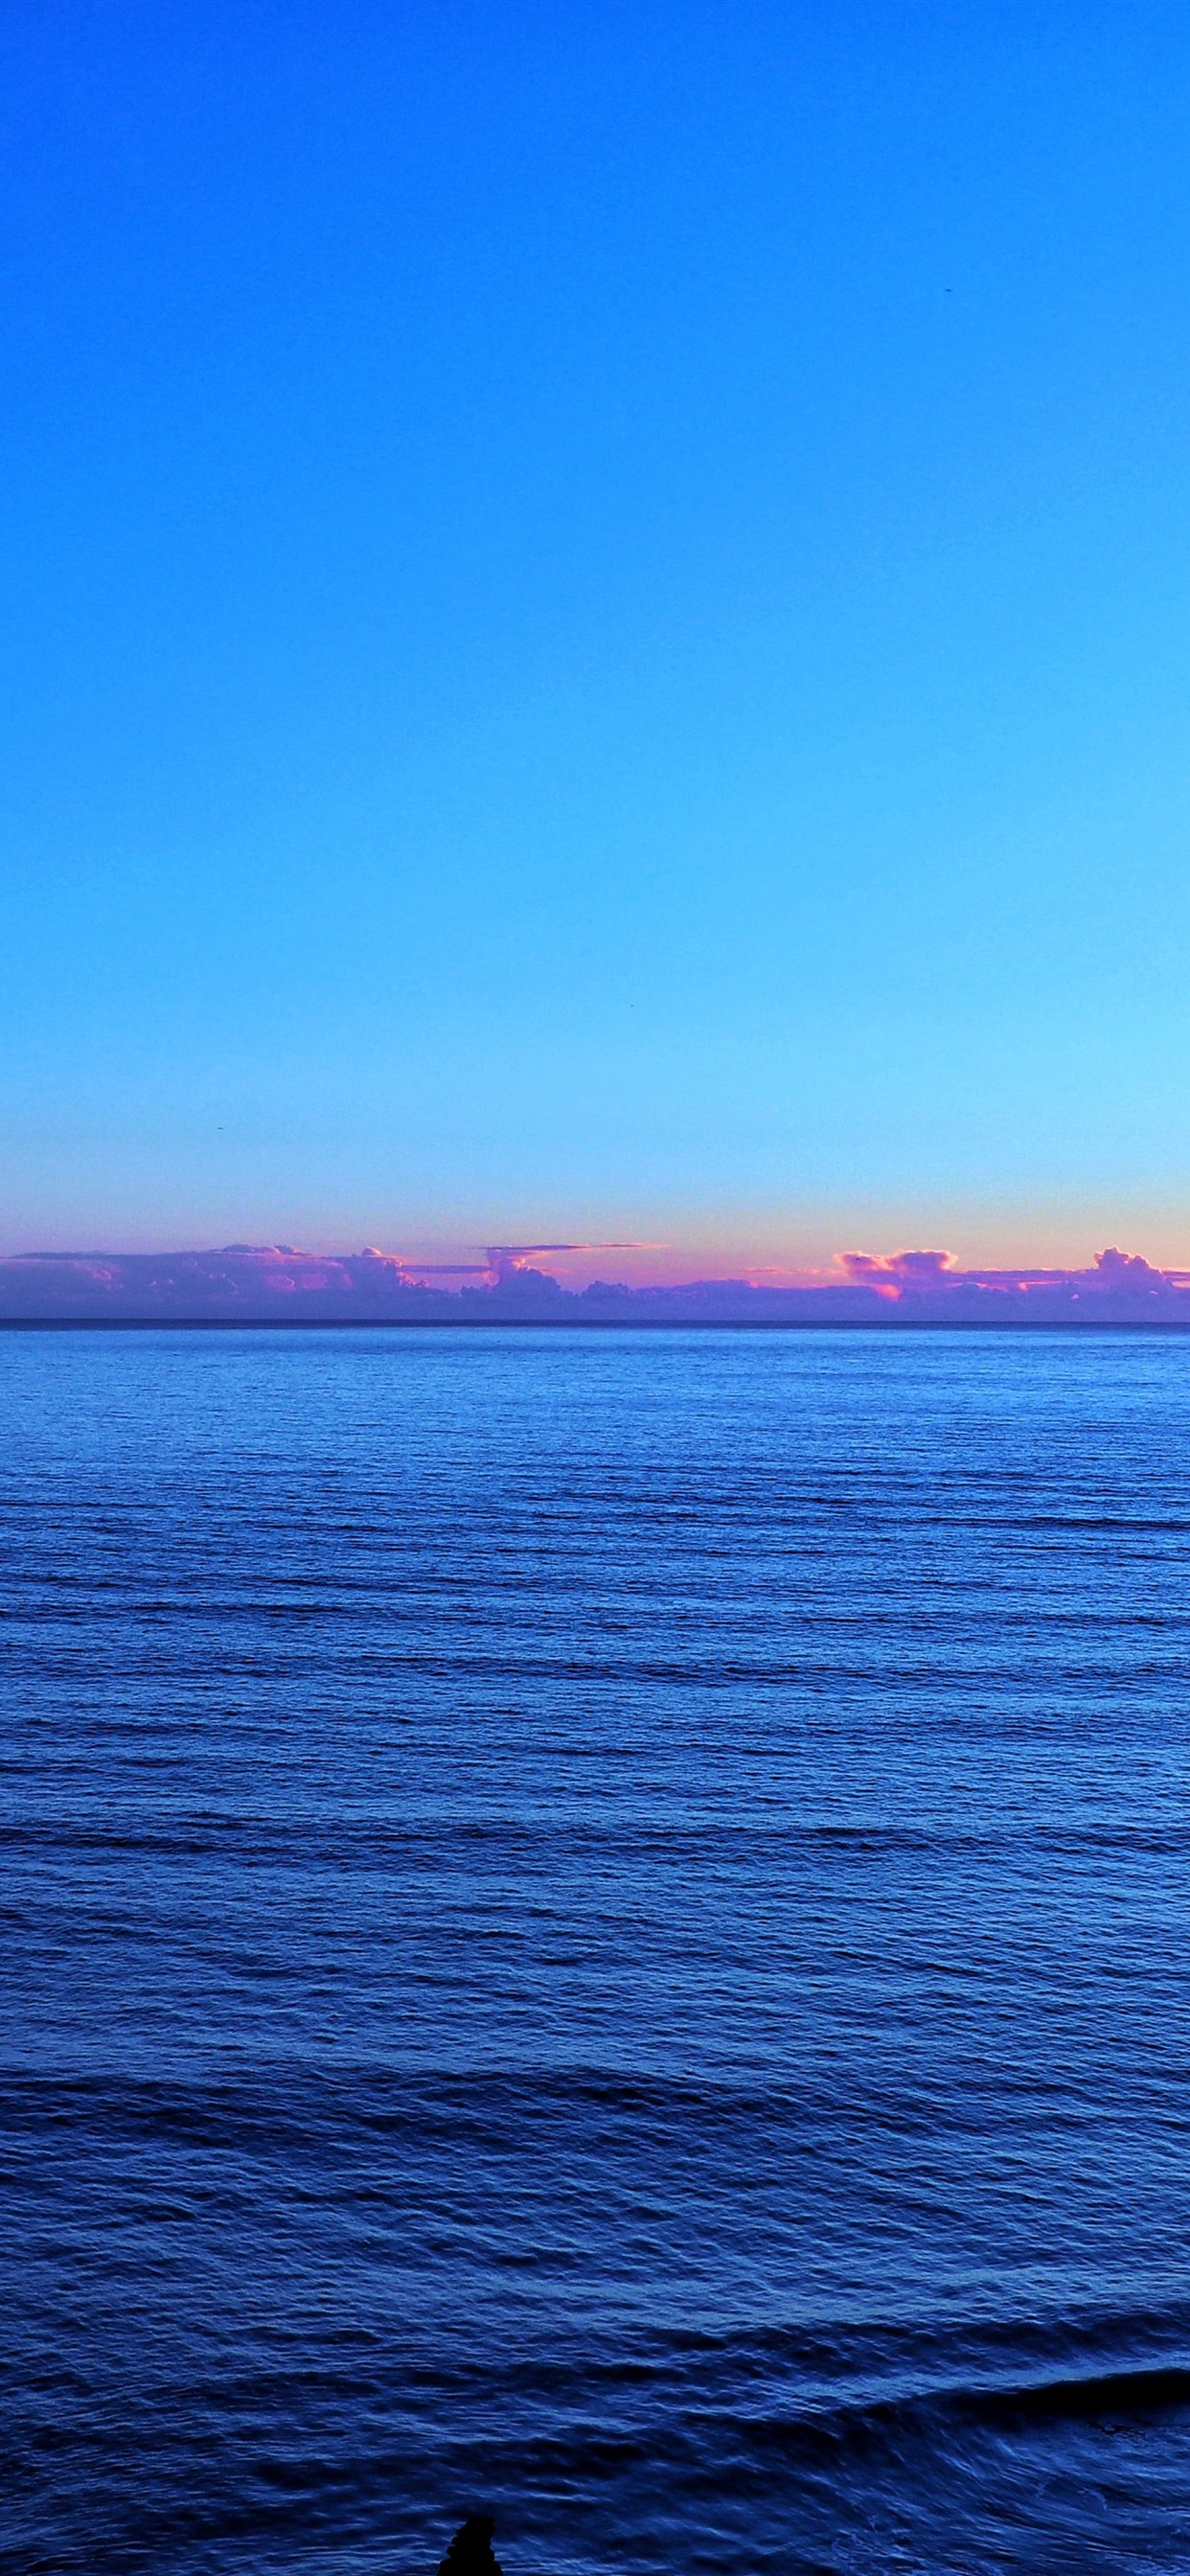 Sea Sunset Blue Sky Glare 1242x2688 Iphone 11 Pro Xs Max Wallpaper Background Picture Image